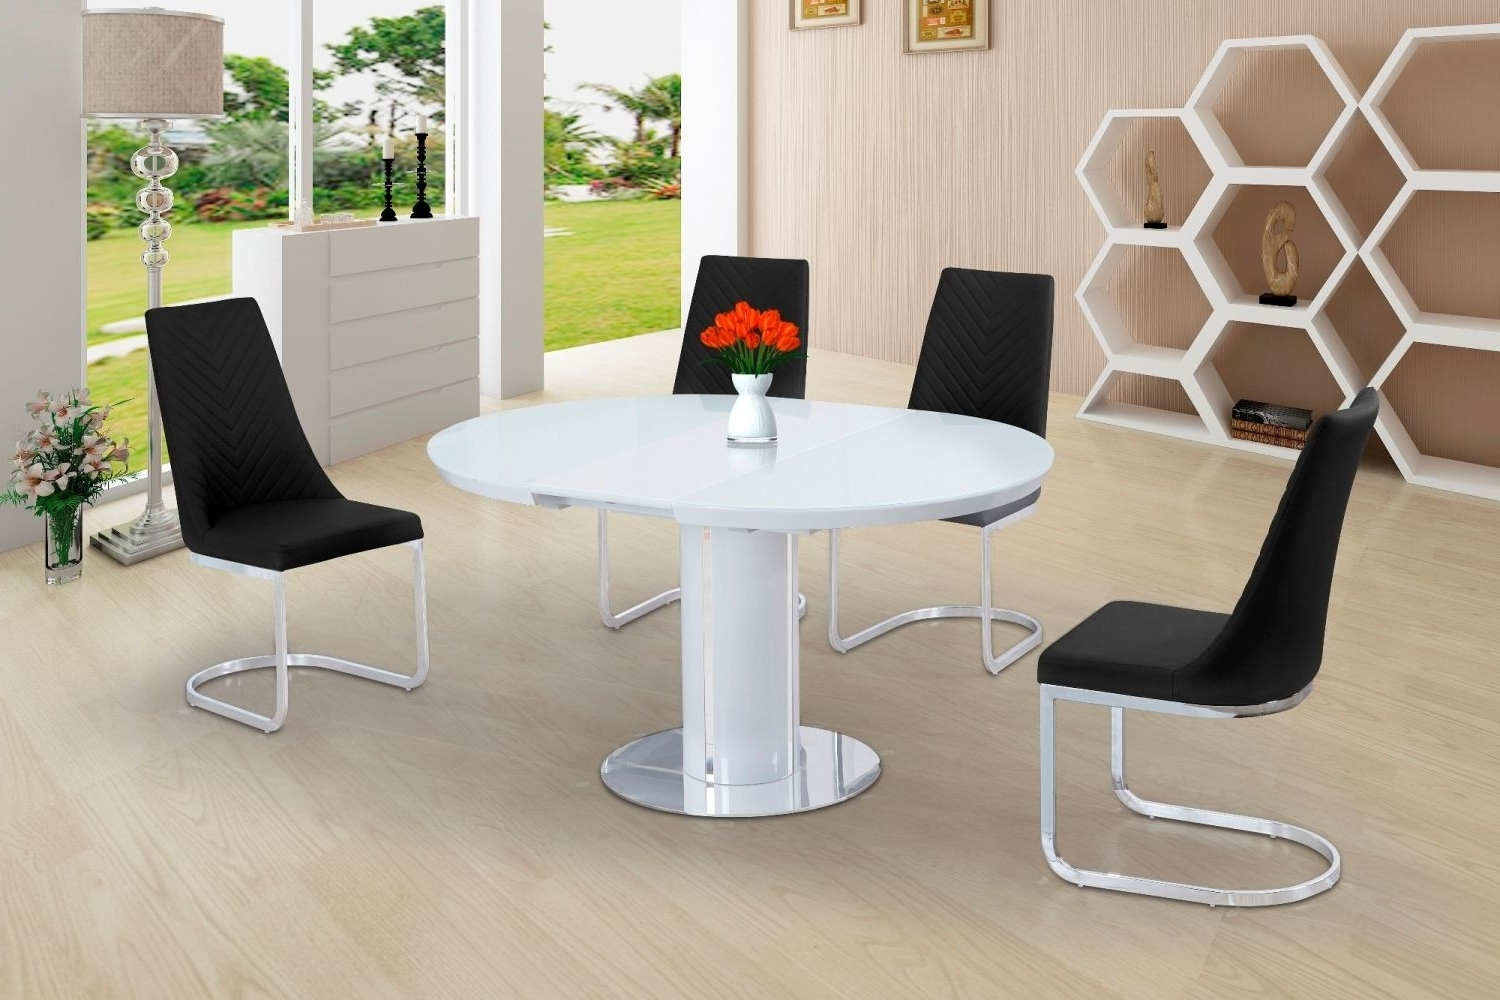 2017 Shiny White Dining Tables Pertaining To Buy Space Saving White Gloss Extending Round Dining Table (View 2 of 25)